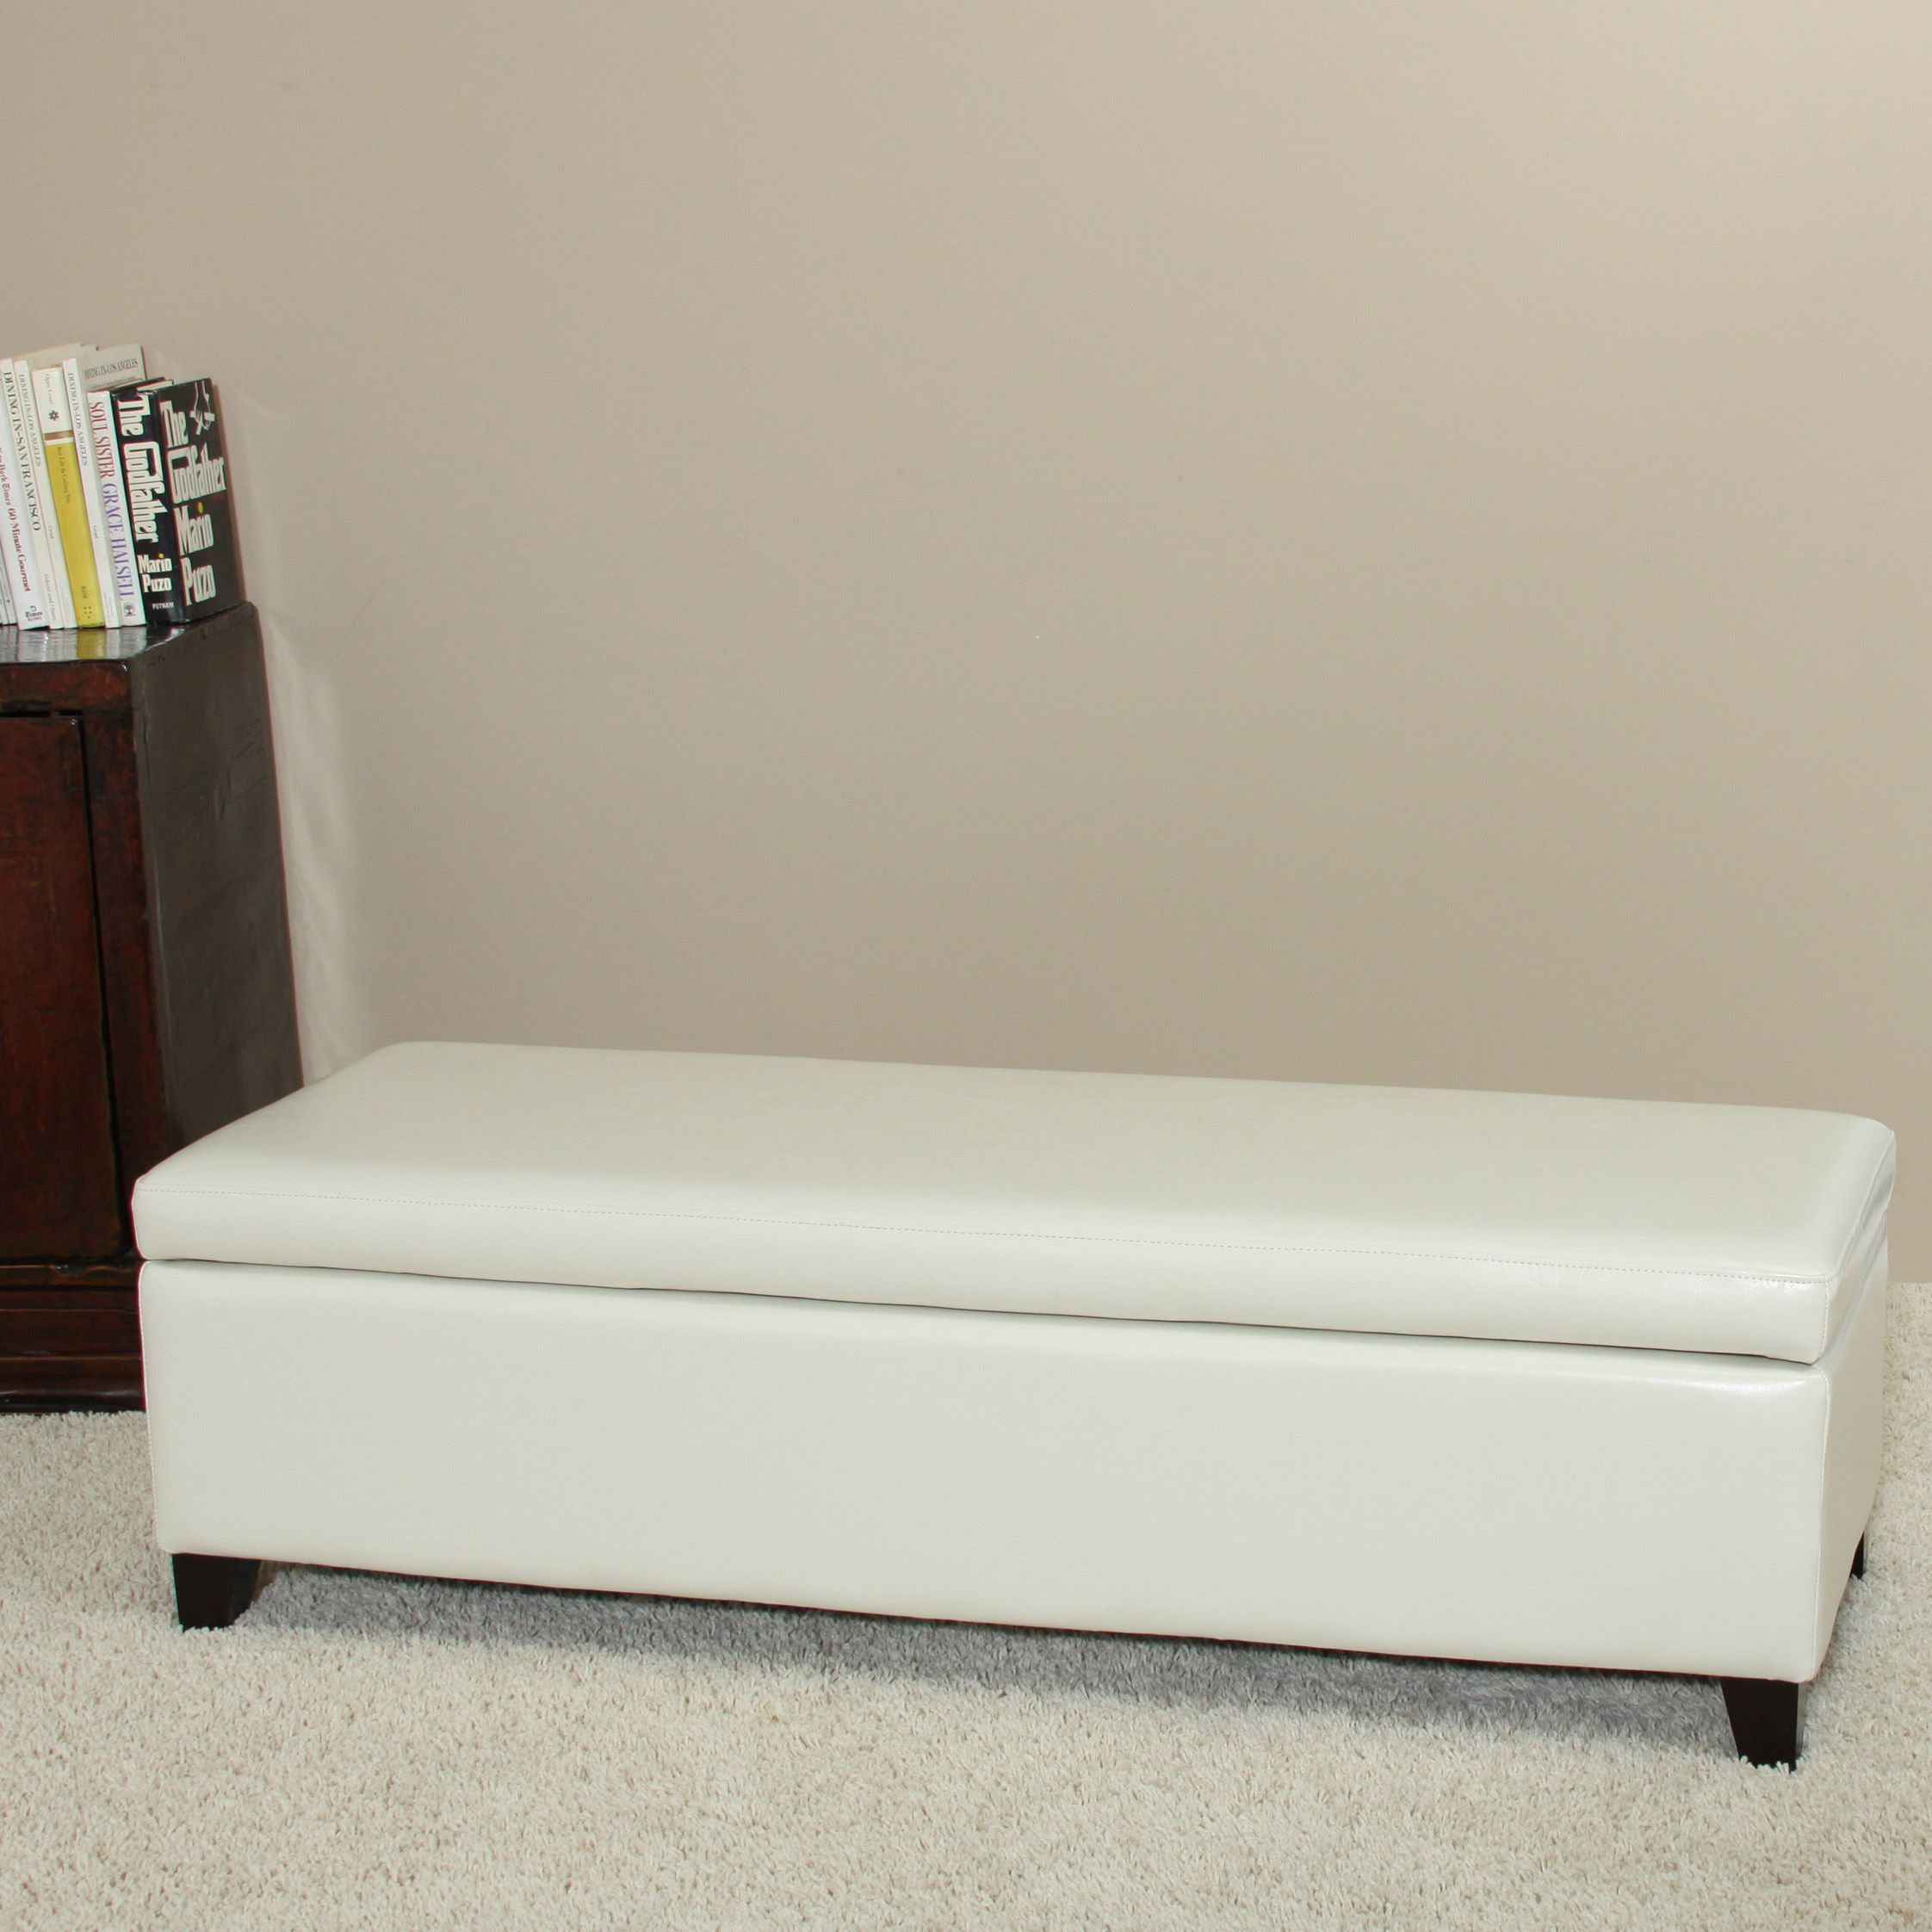 This Ivory Bonded Leather Storage Ottoman Bench Features Hidden Storage  Space That You Can Easily Access